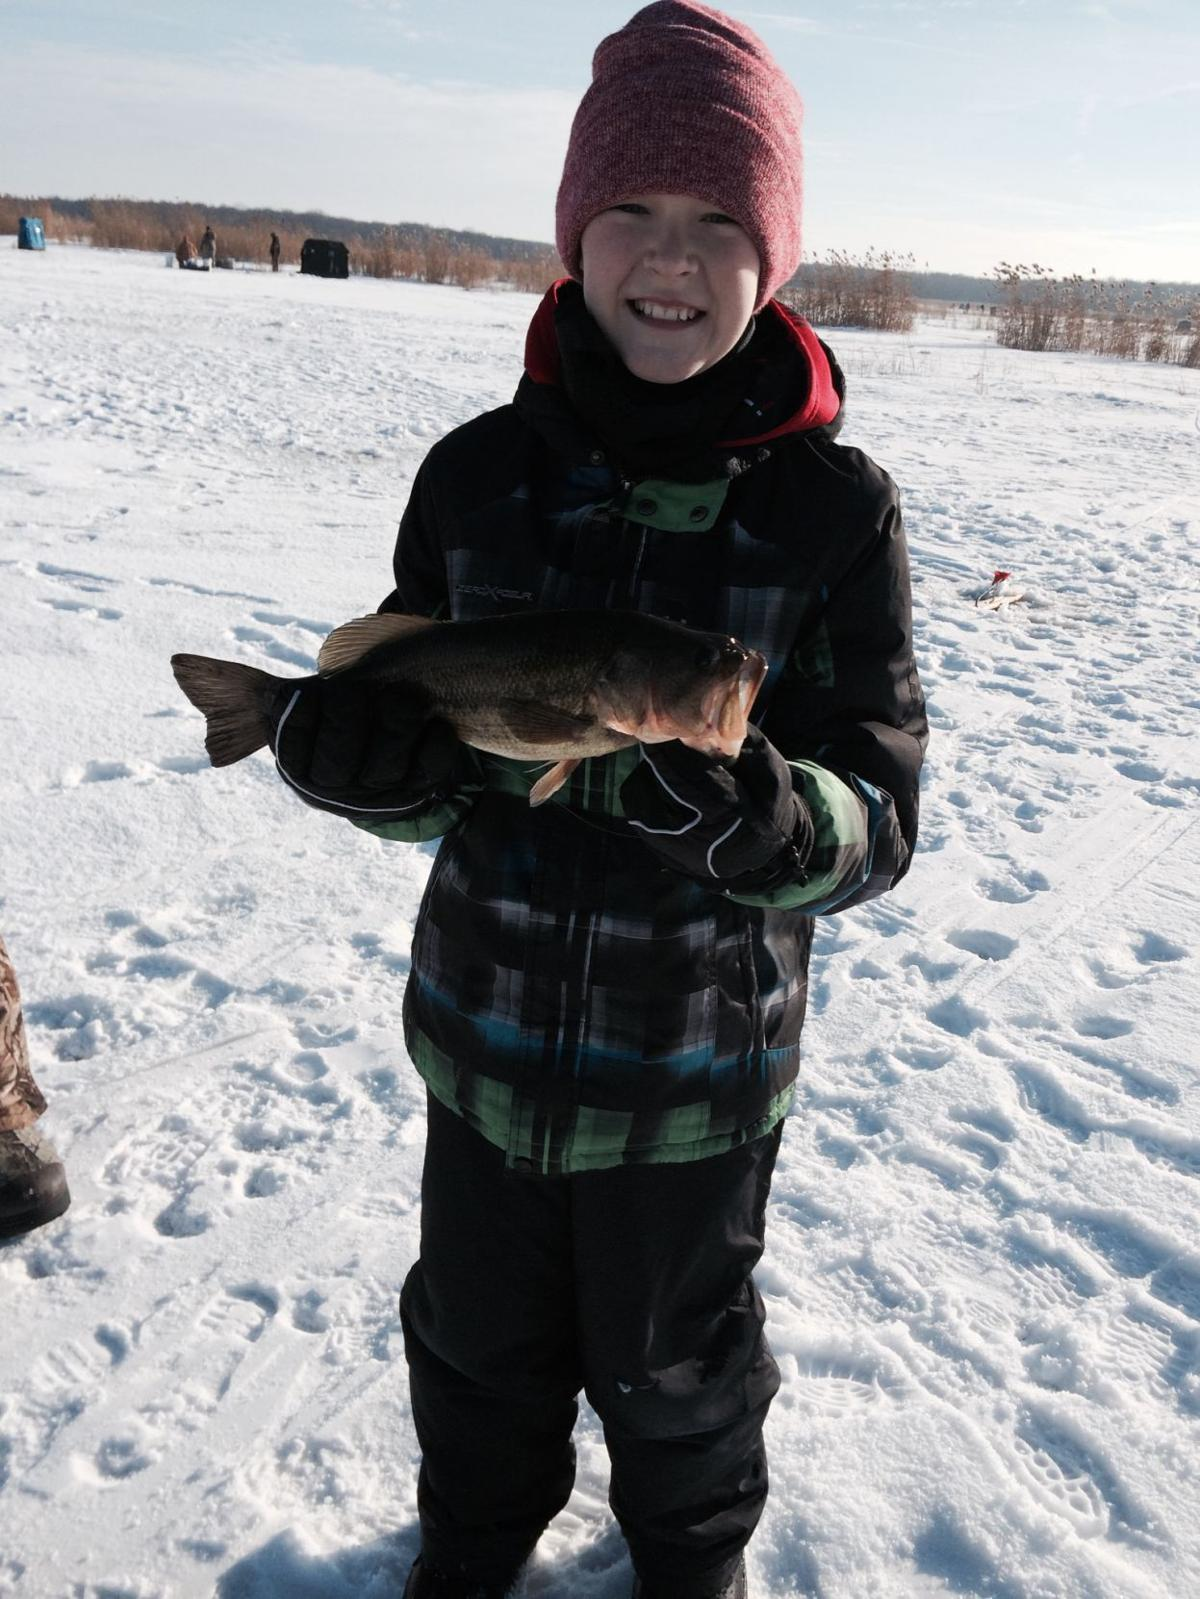 Annual park board ice fishing derby jan 13 at willow for 13 ice fishing